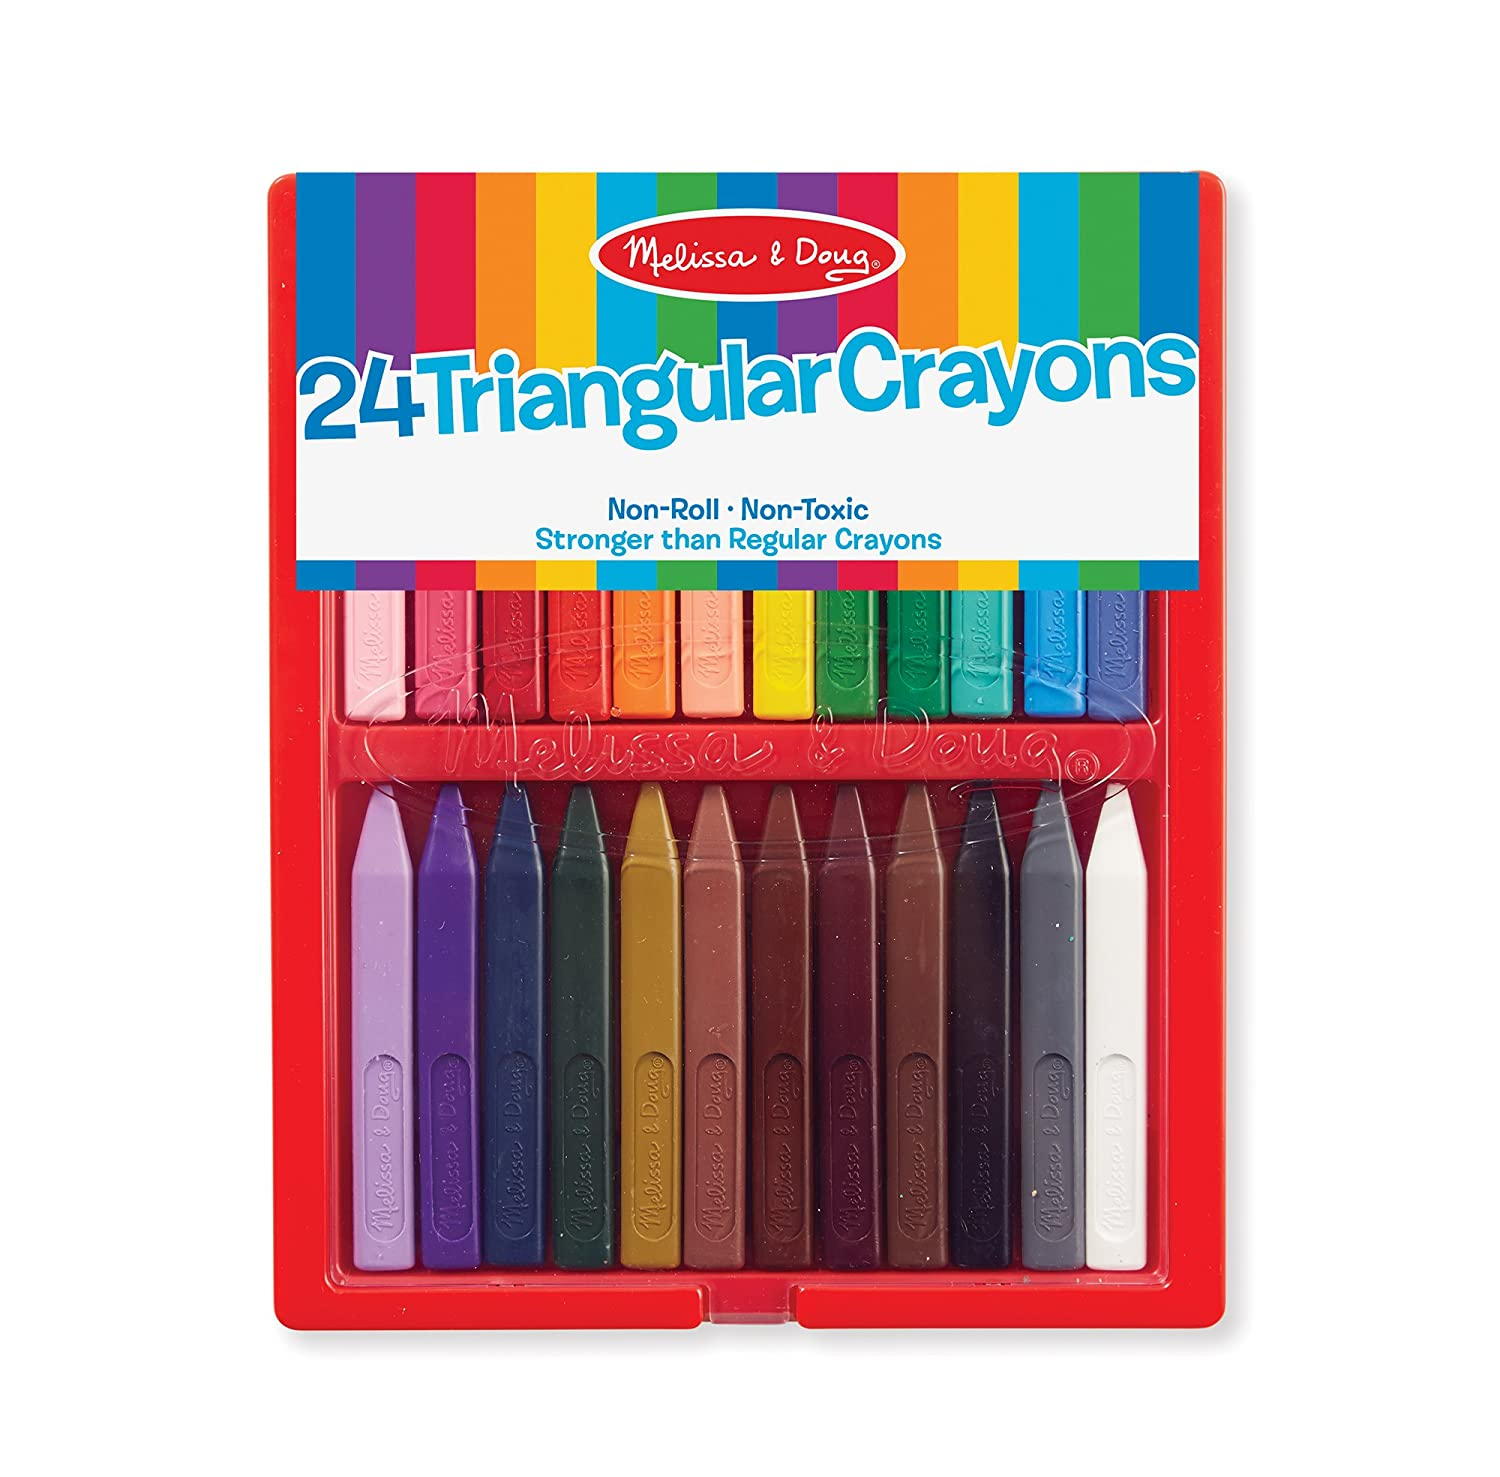 10 Best Crayons for Toddlers Reviews of 2021 Parents Should Know 19